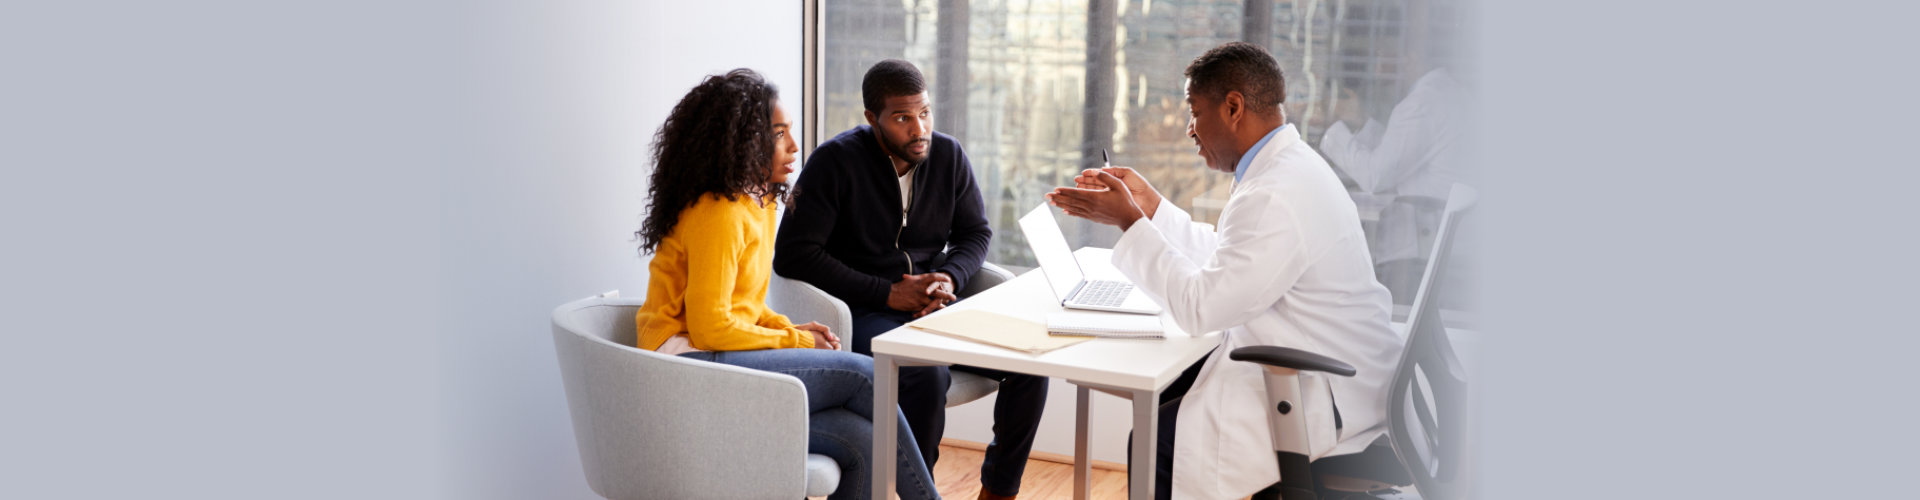 Couple Having Consultation With Male Doctor